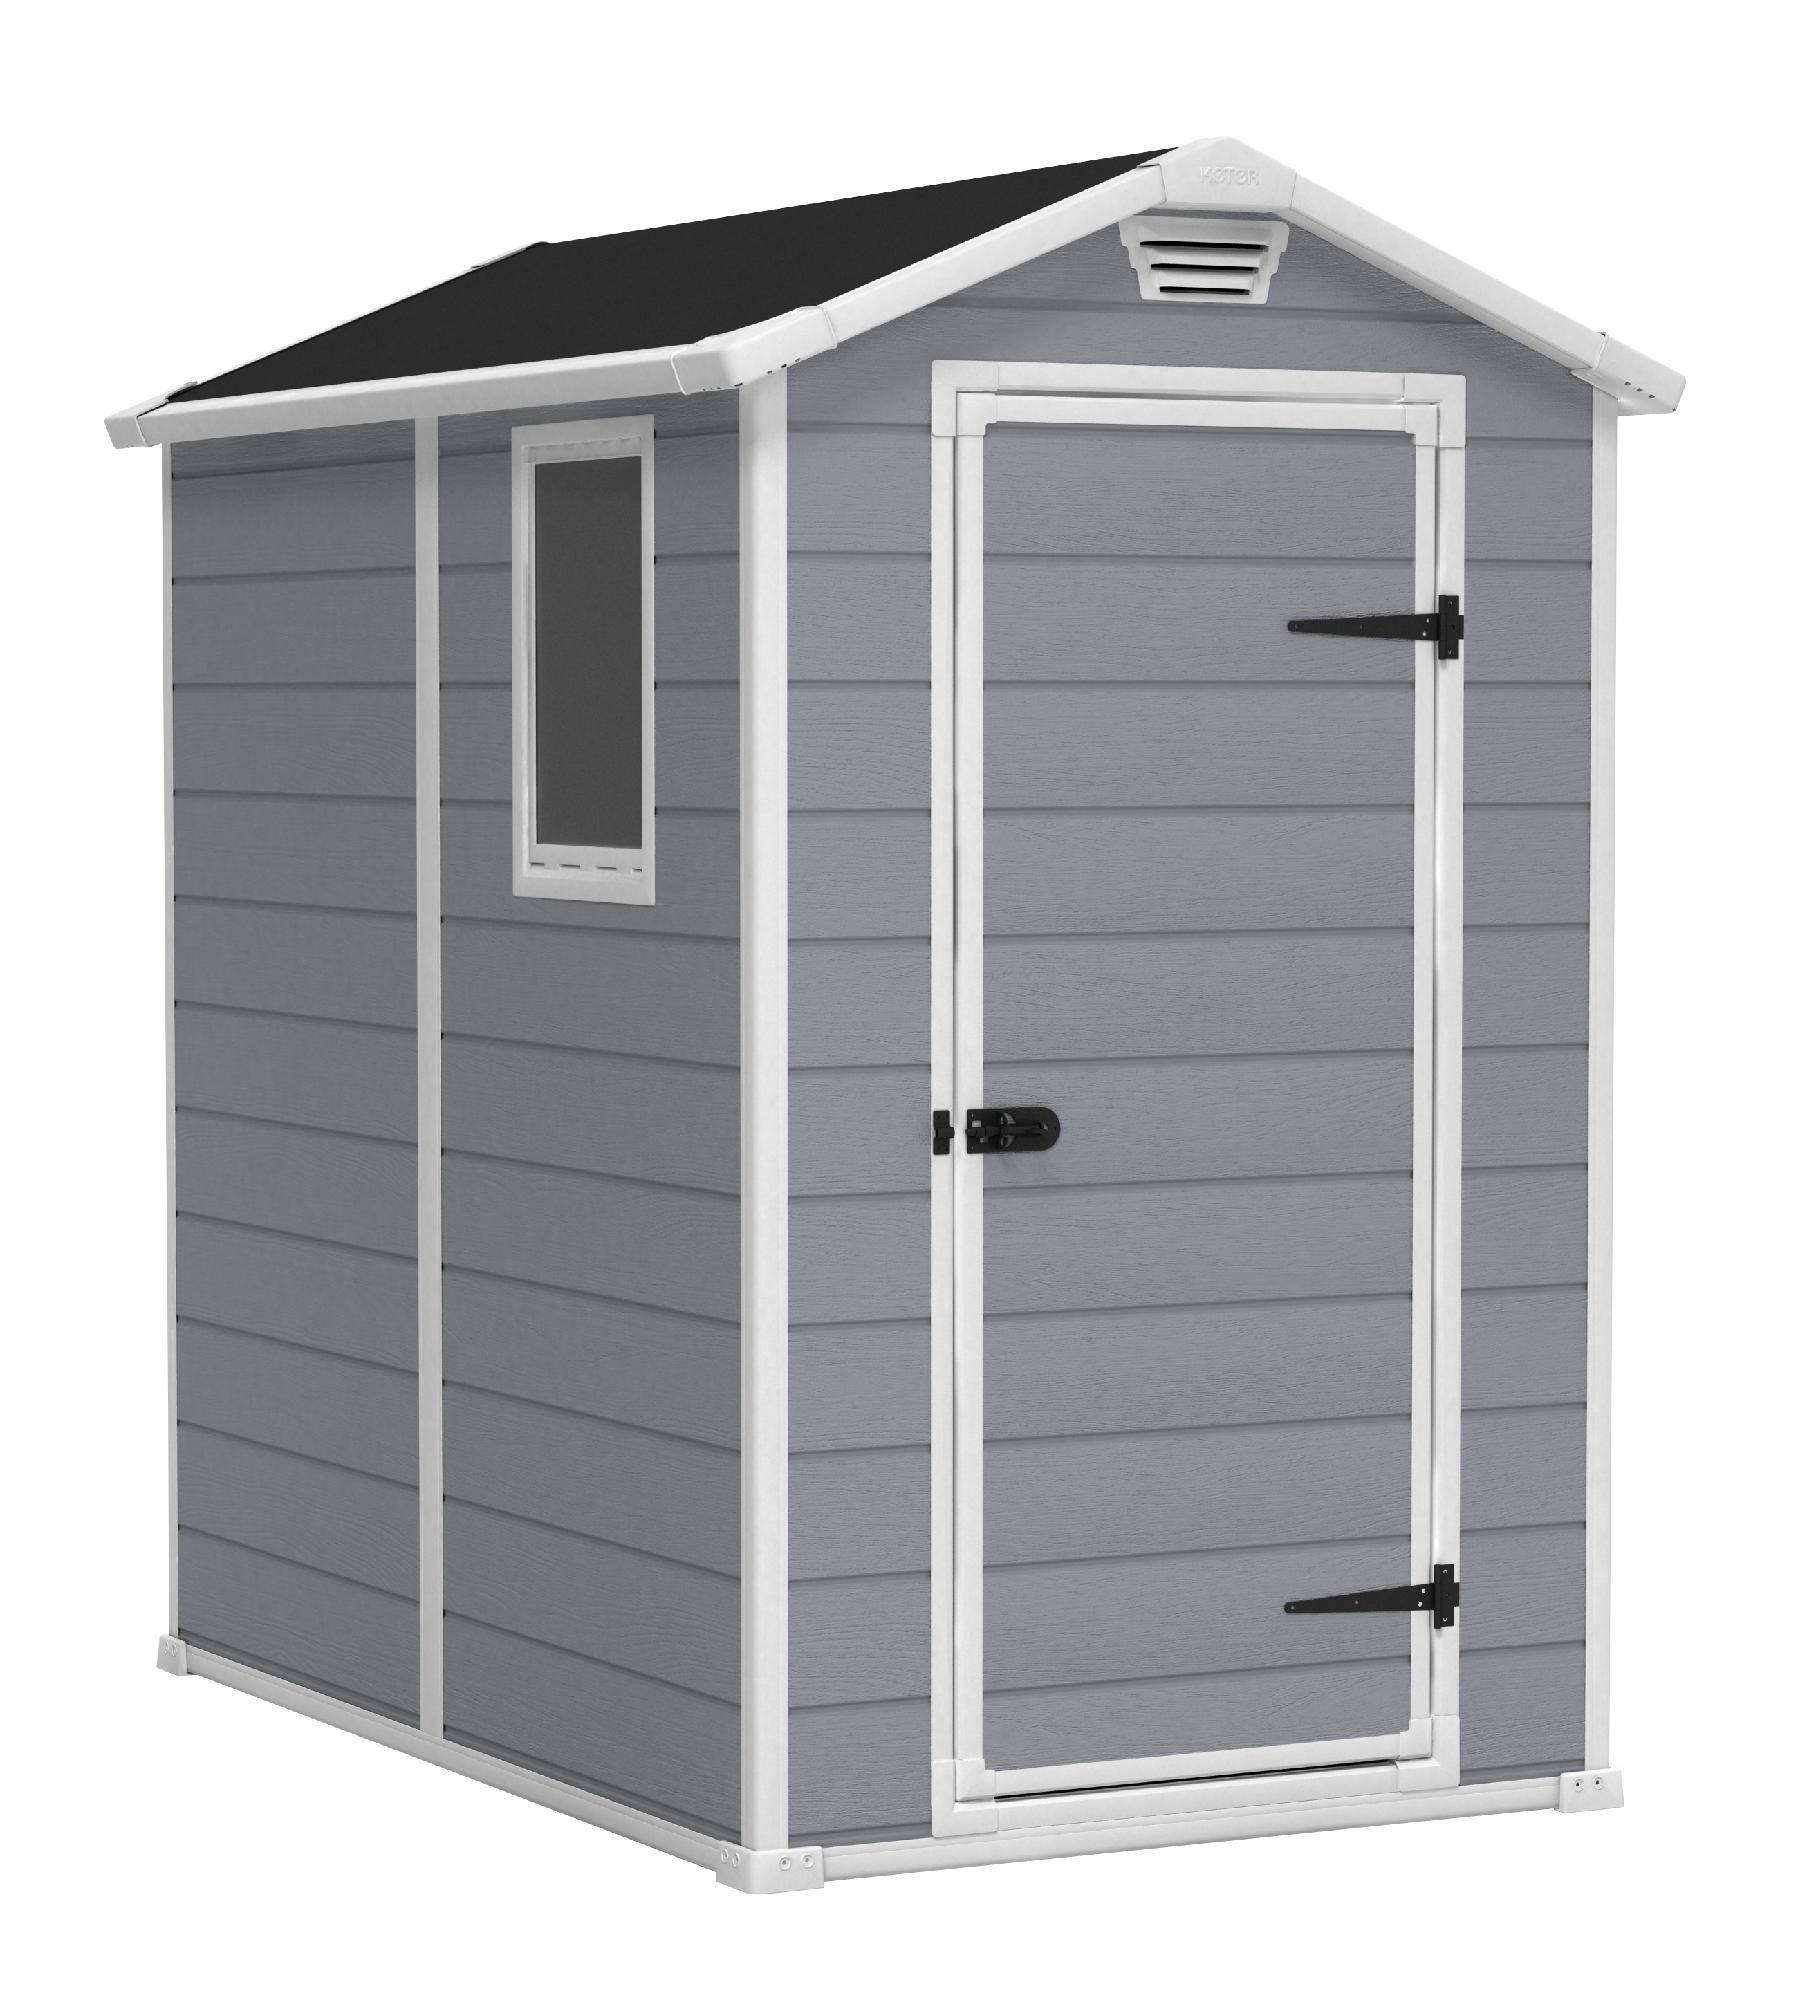 Sears keter keter manor 4x6 lawn garden for Jardin 4x6 shed